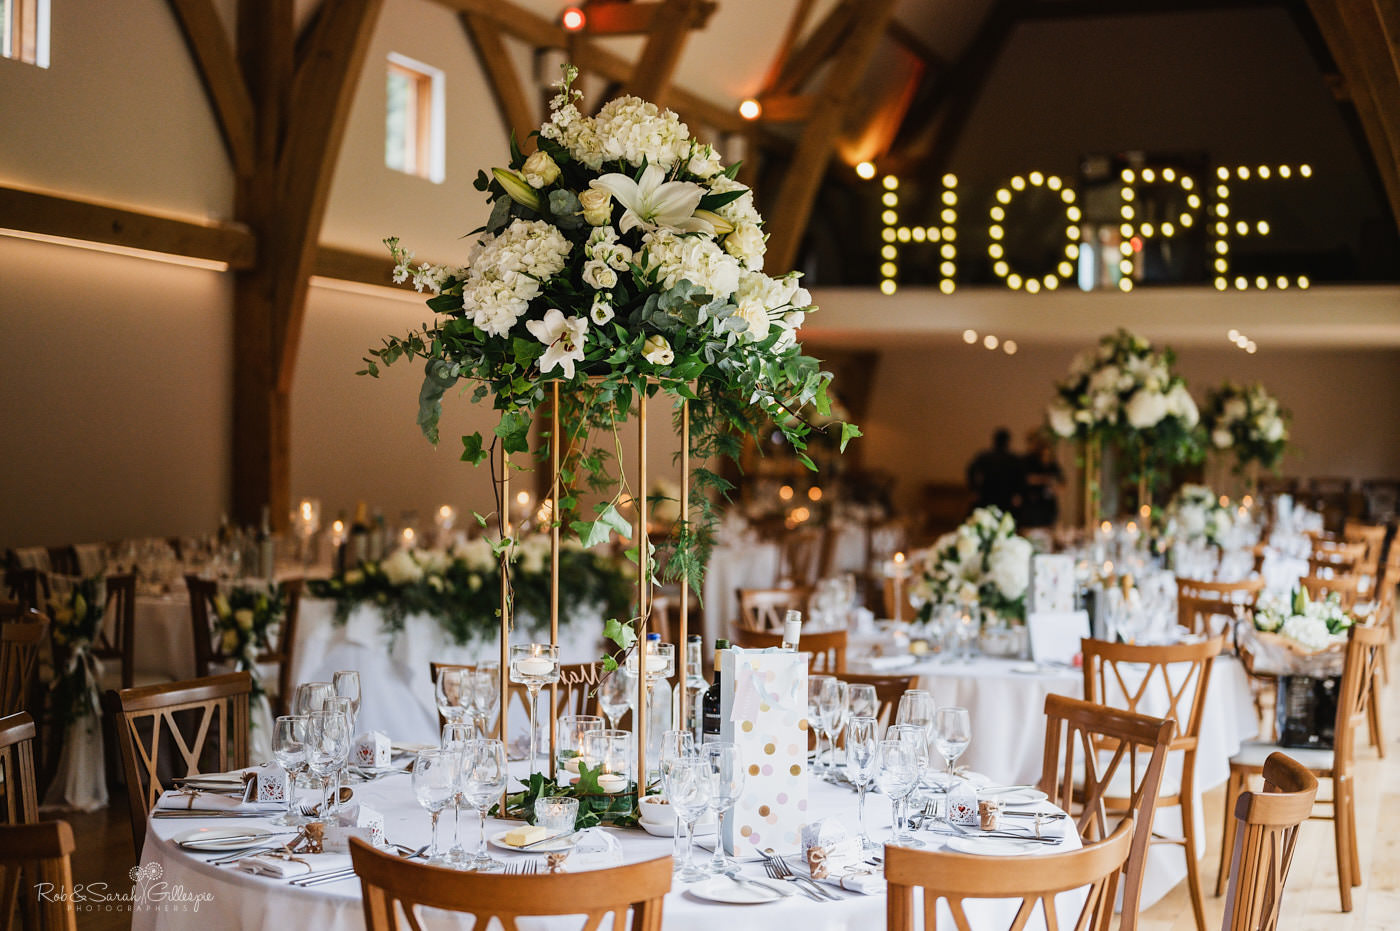 Wedding meal details with floral centrepieces